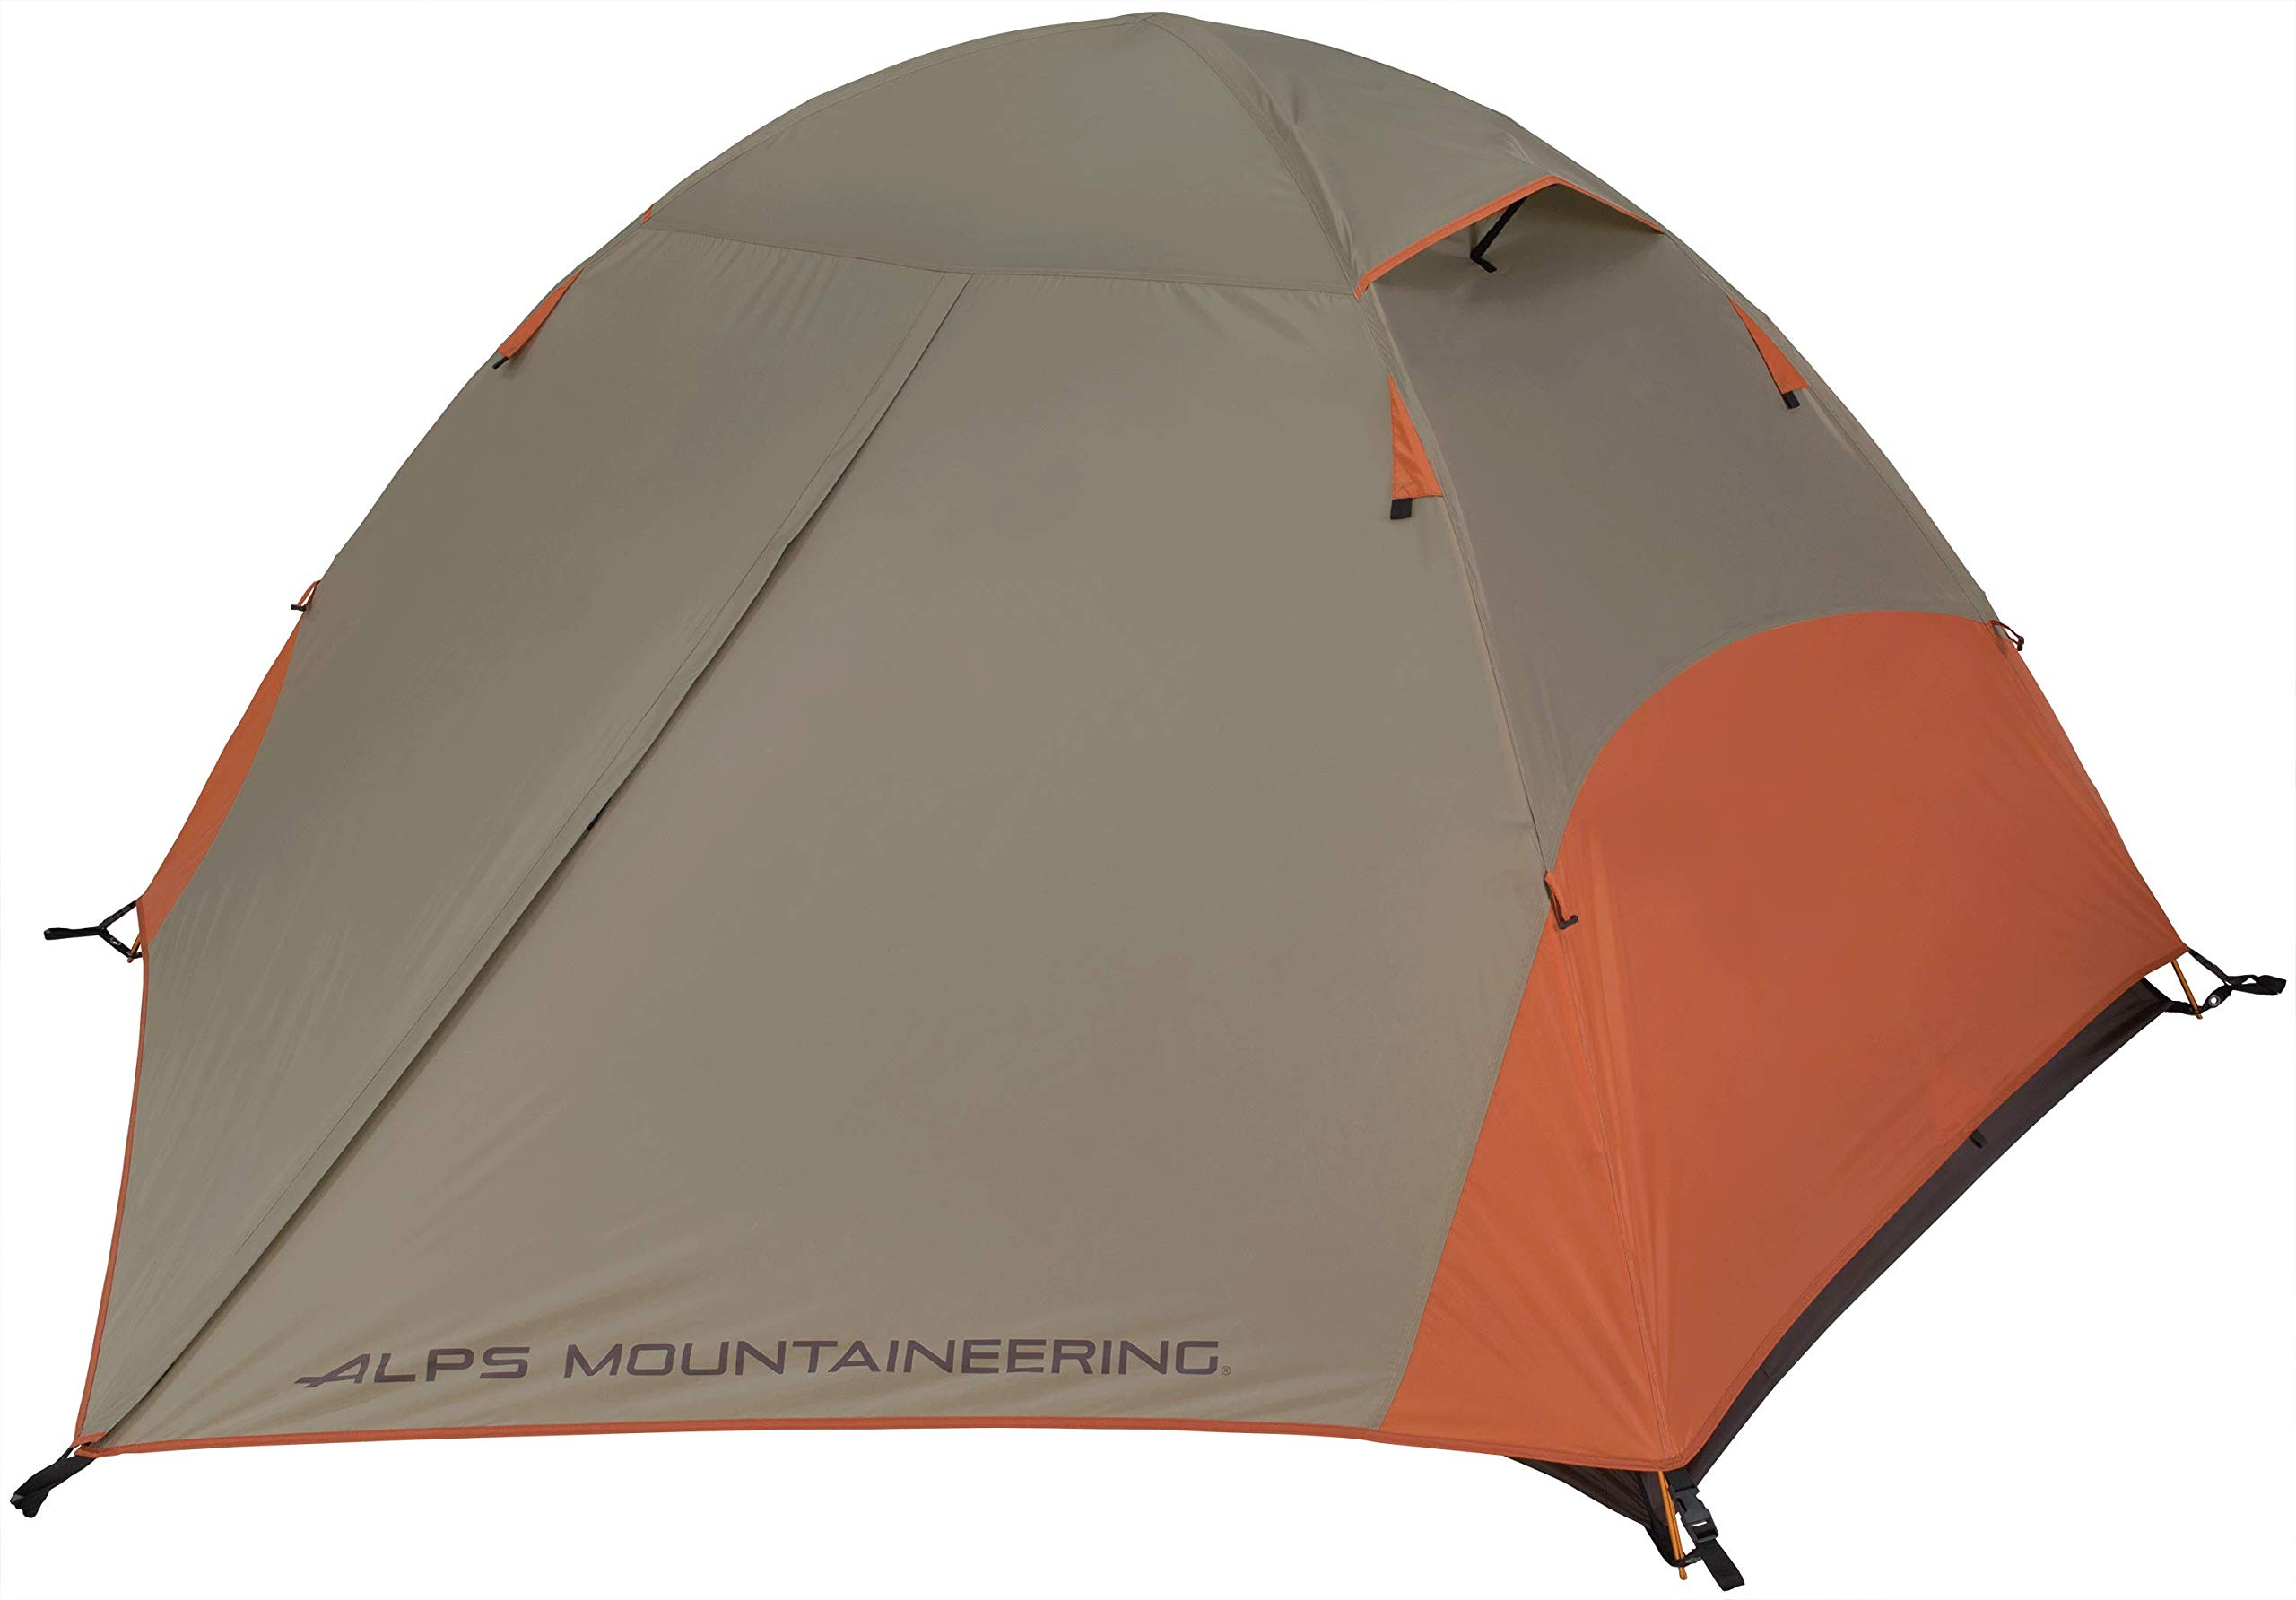 ALPS Mountaineering Lynx 4-Person Tent, Clay/Rust by ALPS Mountaineering (Image #3)